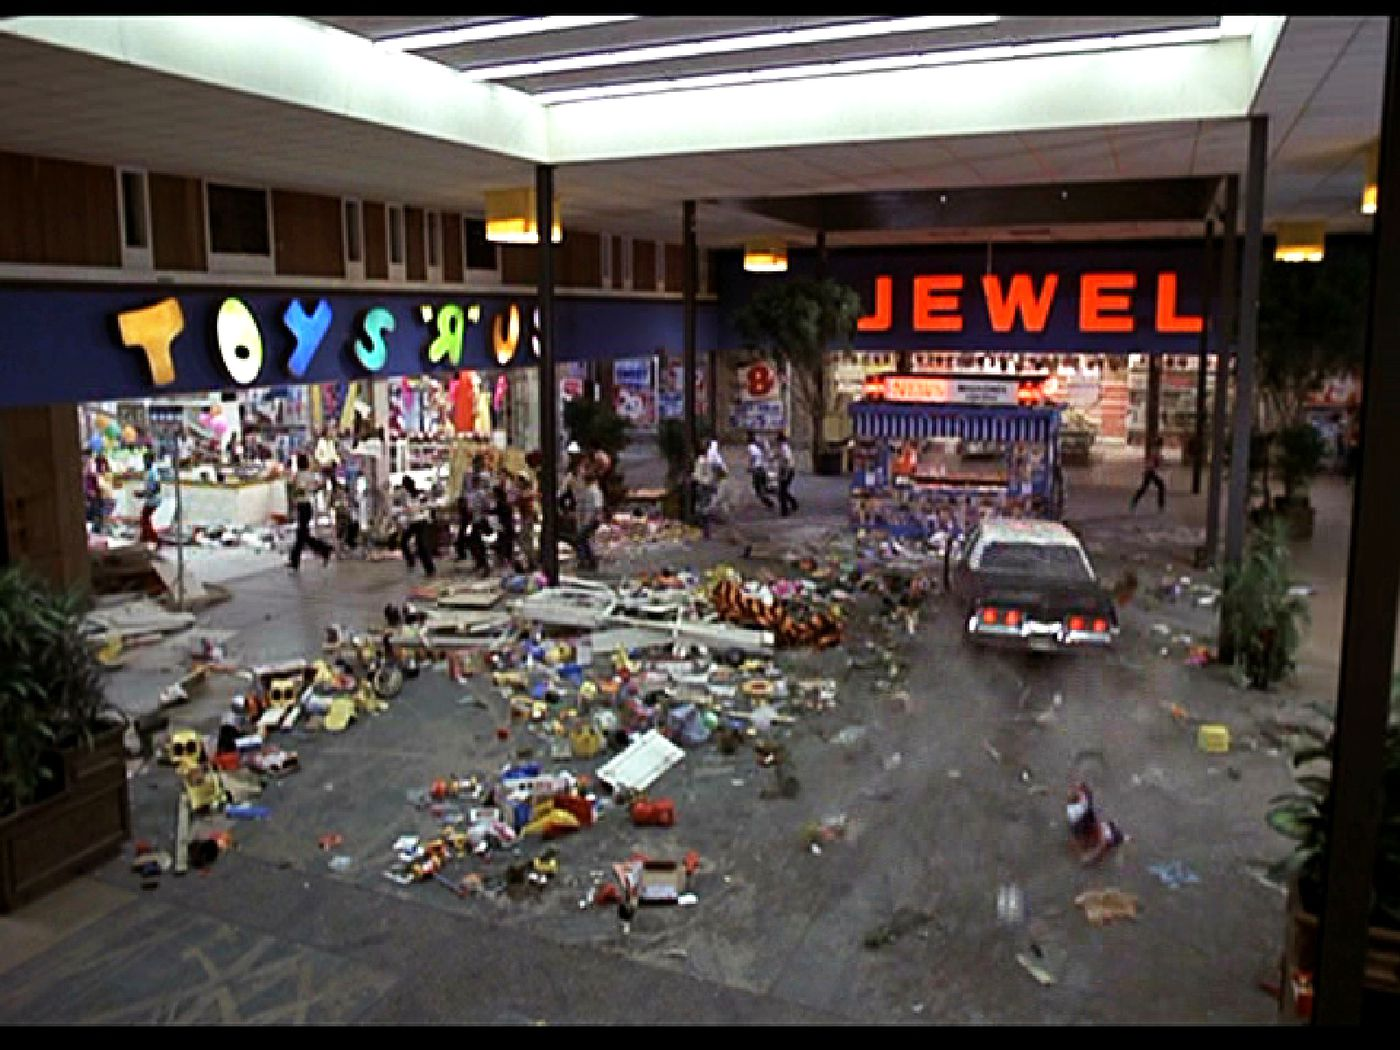 Car Chase Mall From Blues Brothers Now A Wreck But It Was All Fake Then And It S Been Gone For Years Chicago Sun Times